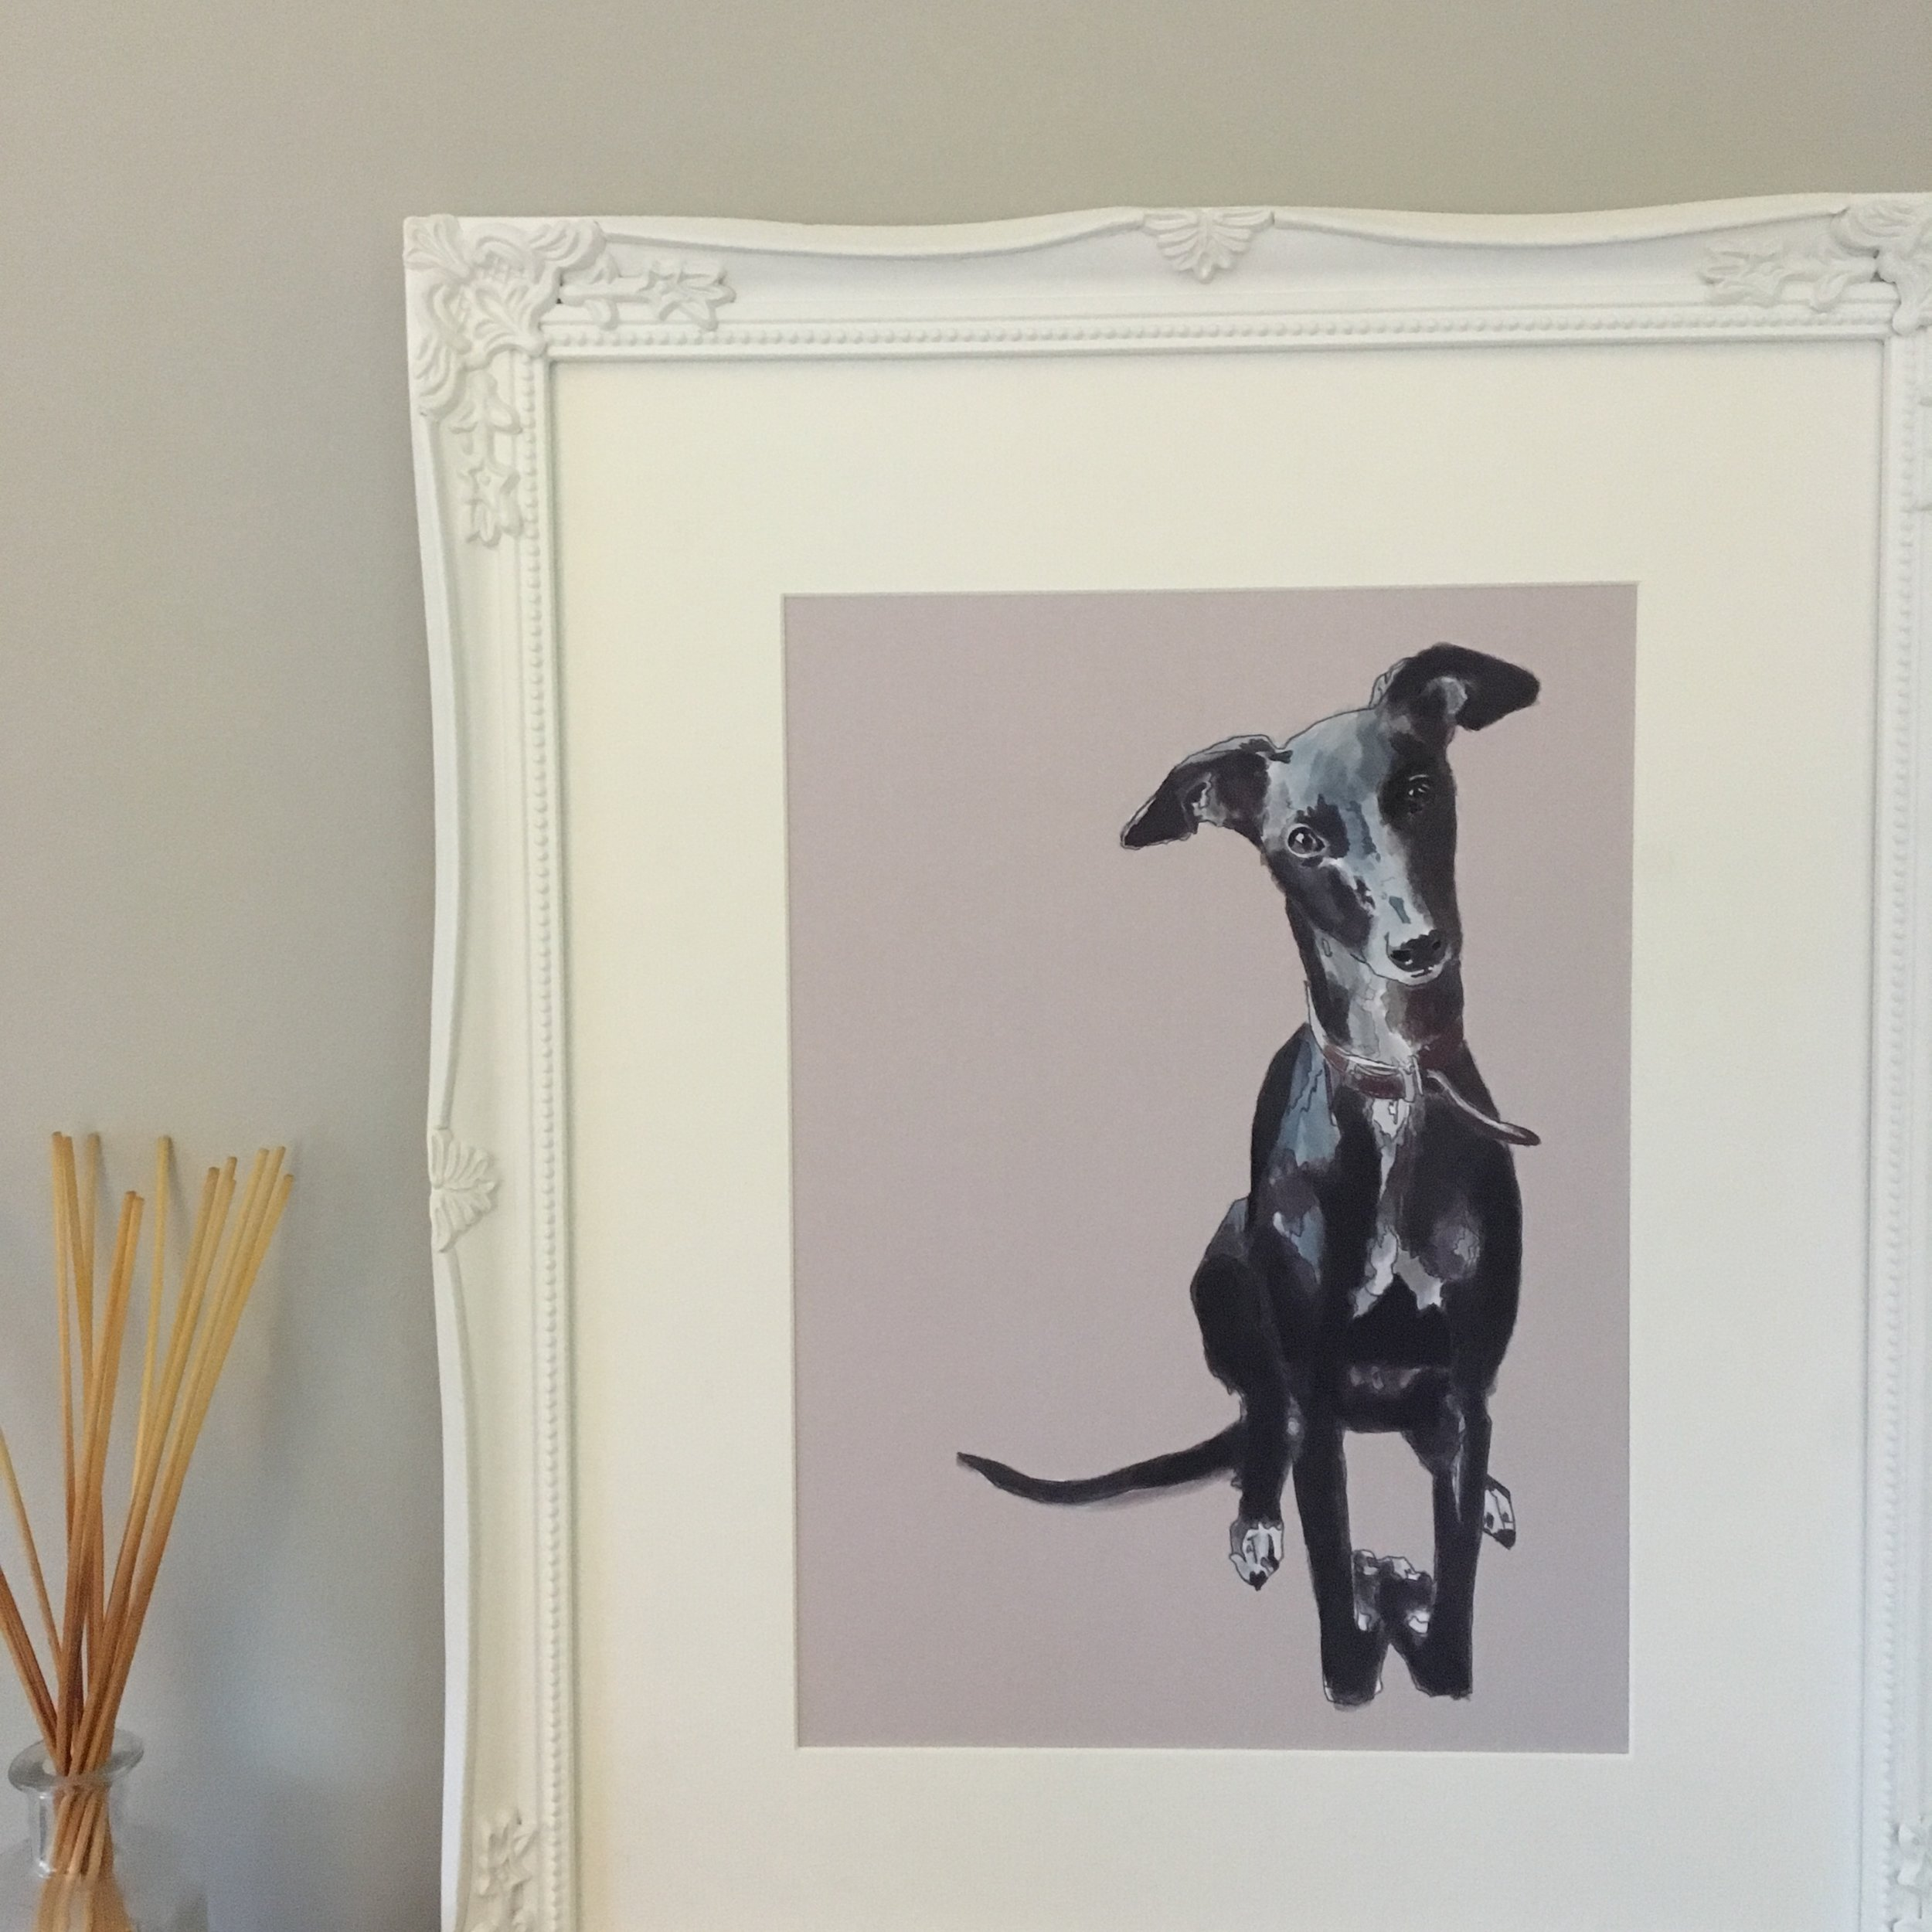 Unique | Personal | Bespoke - The perfect gift for a pet lover!